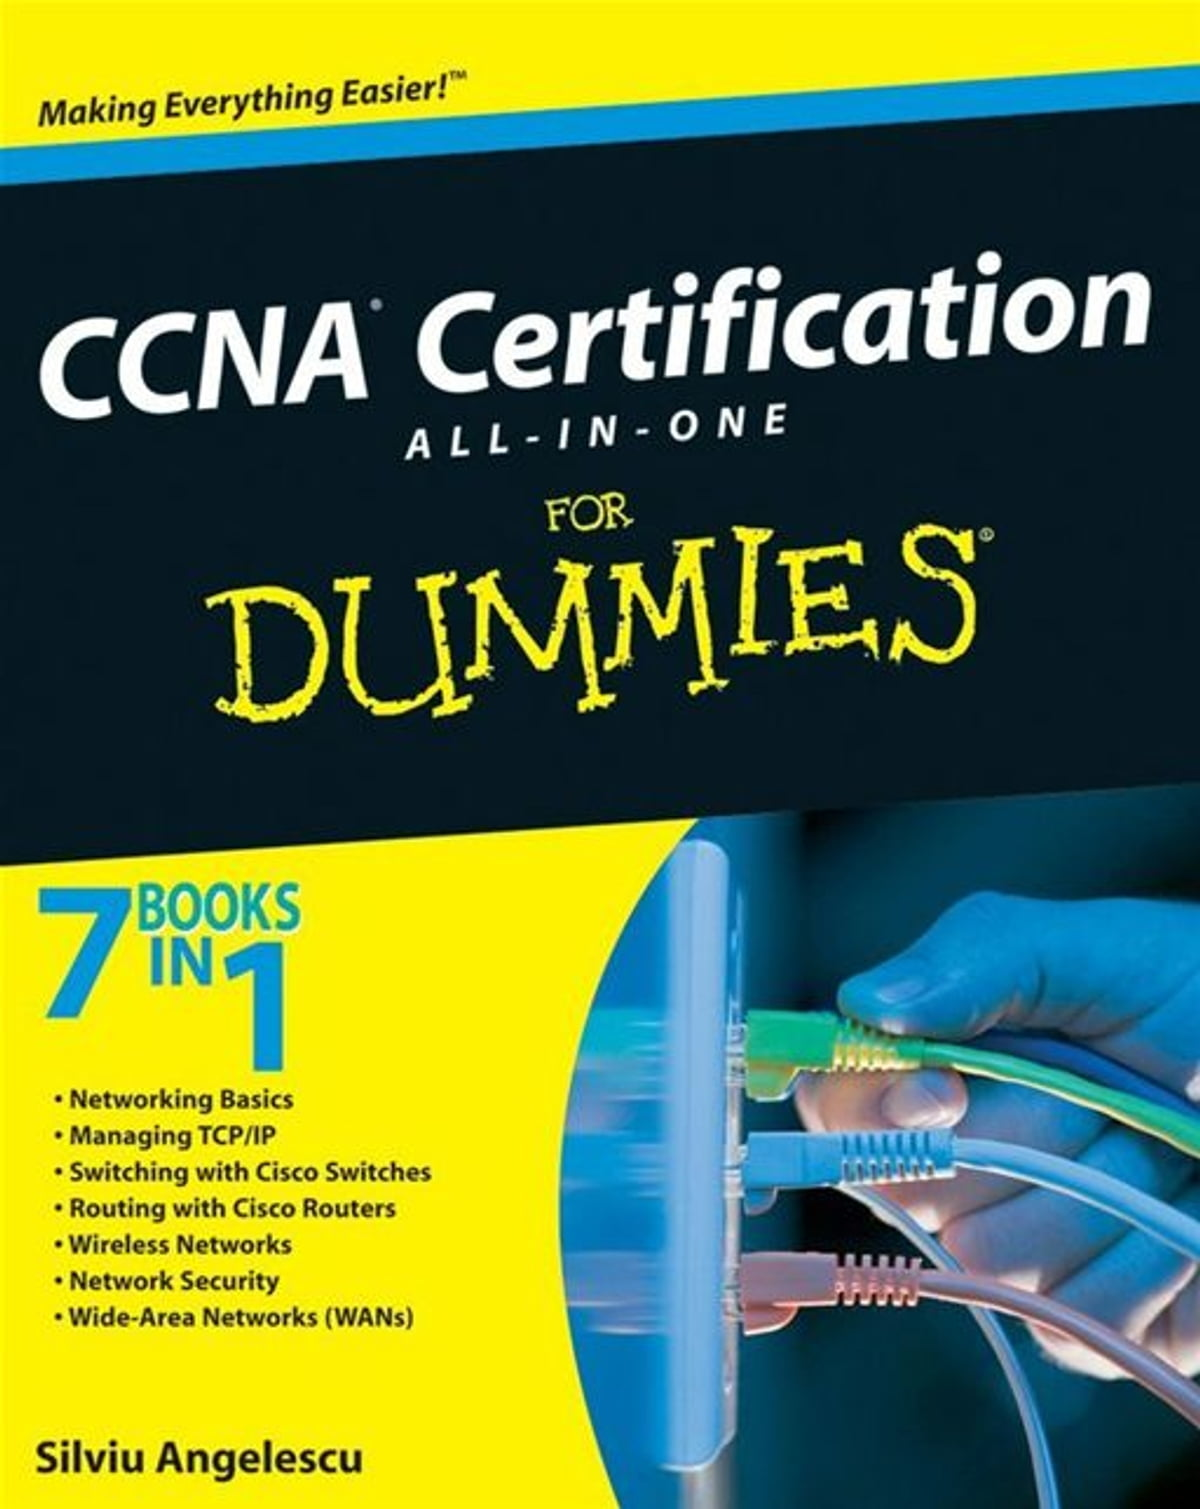 Ccna certification all in one for dummies ebook by silviu ccna certification all in one for dummies ebook by silviu angelescu 9780470635926 rakuten kobo 1betcityfo Gallery